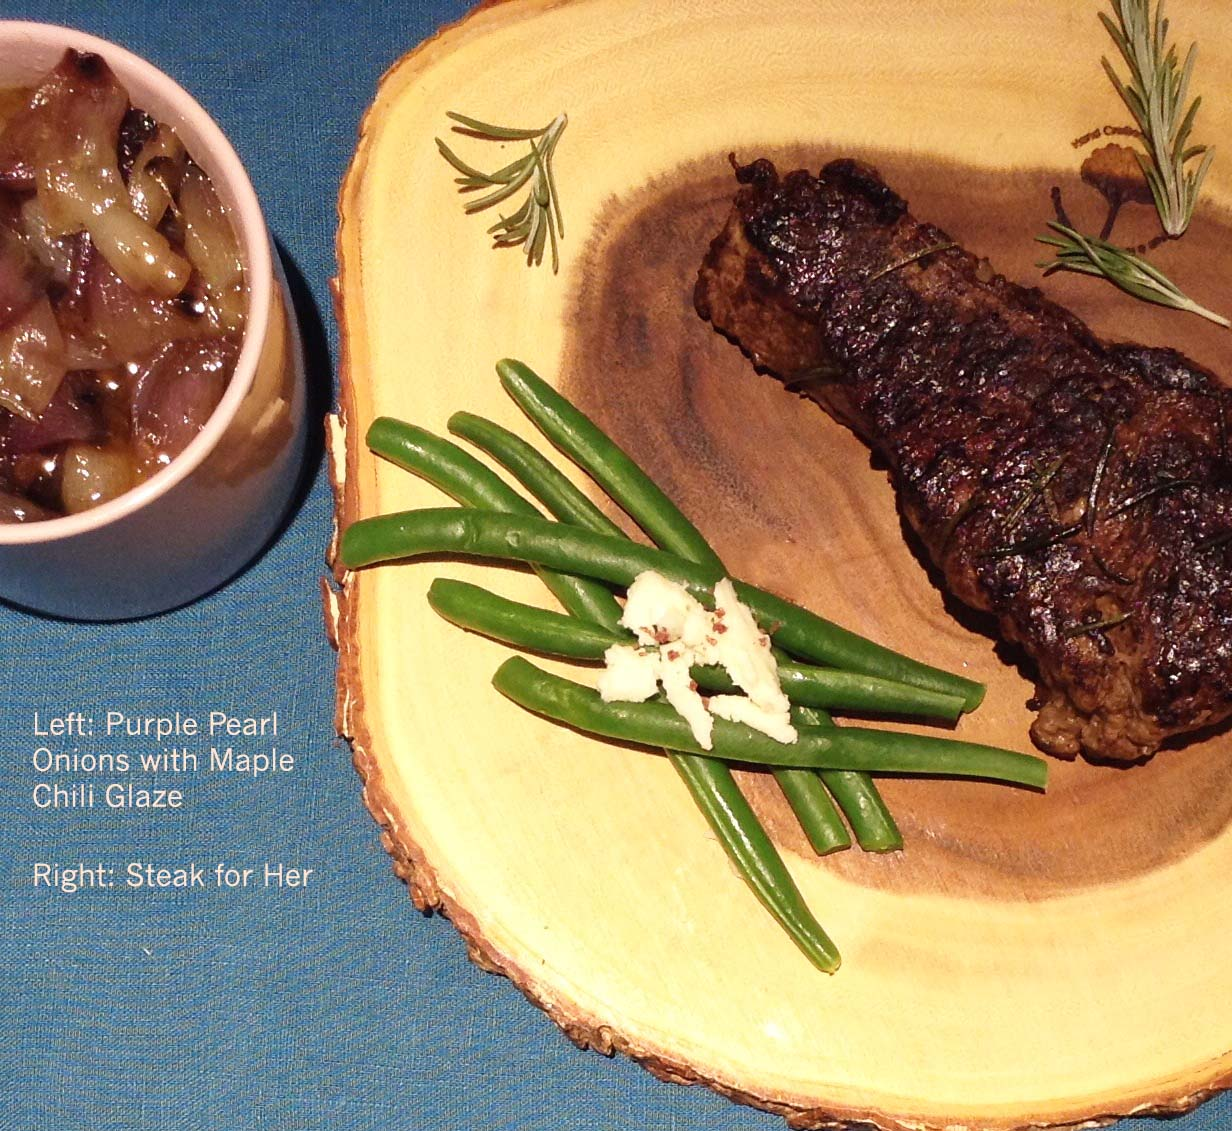 Steak for Her with Merlot, Rosemary, & Dark Chocolate Sauce and Purple Pearl Onions in Maple Chili Glaze